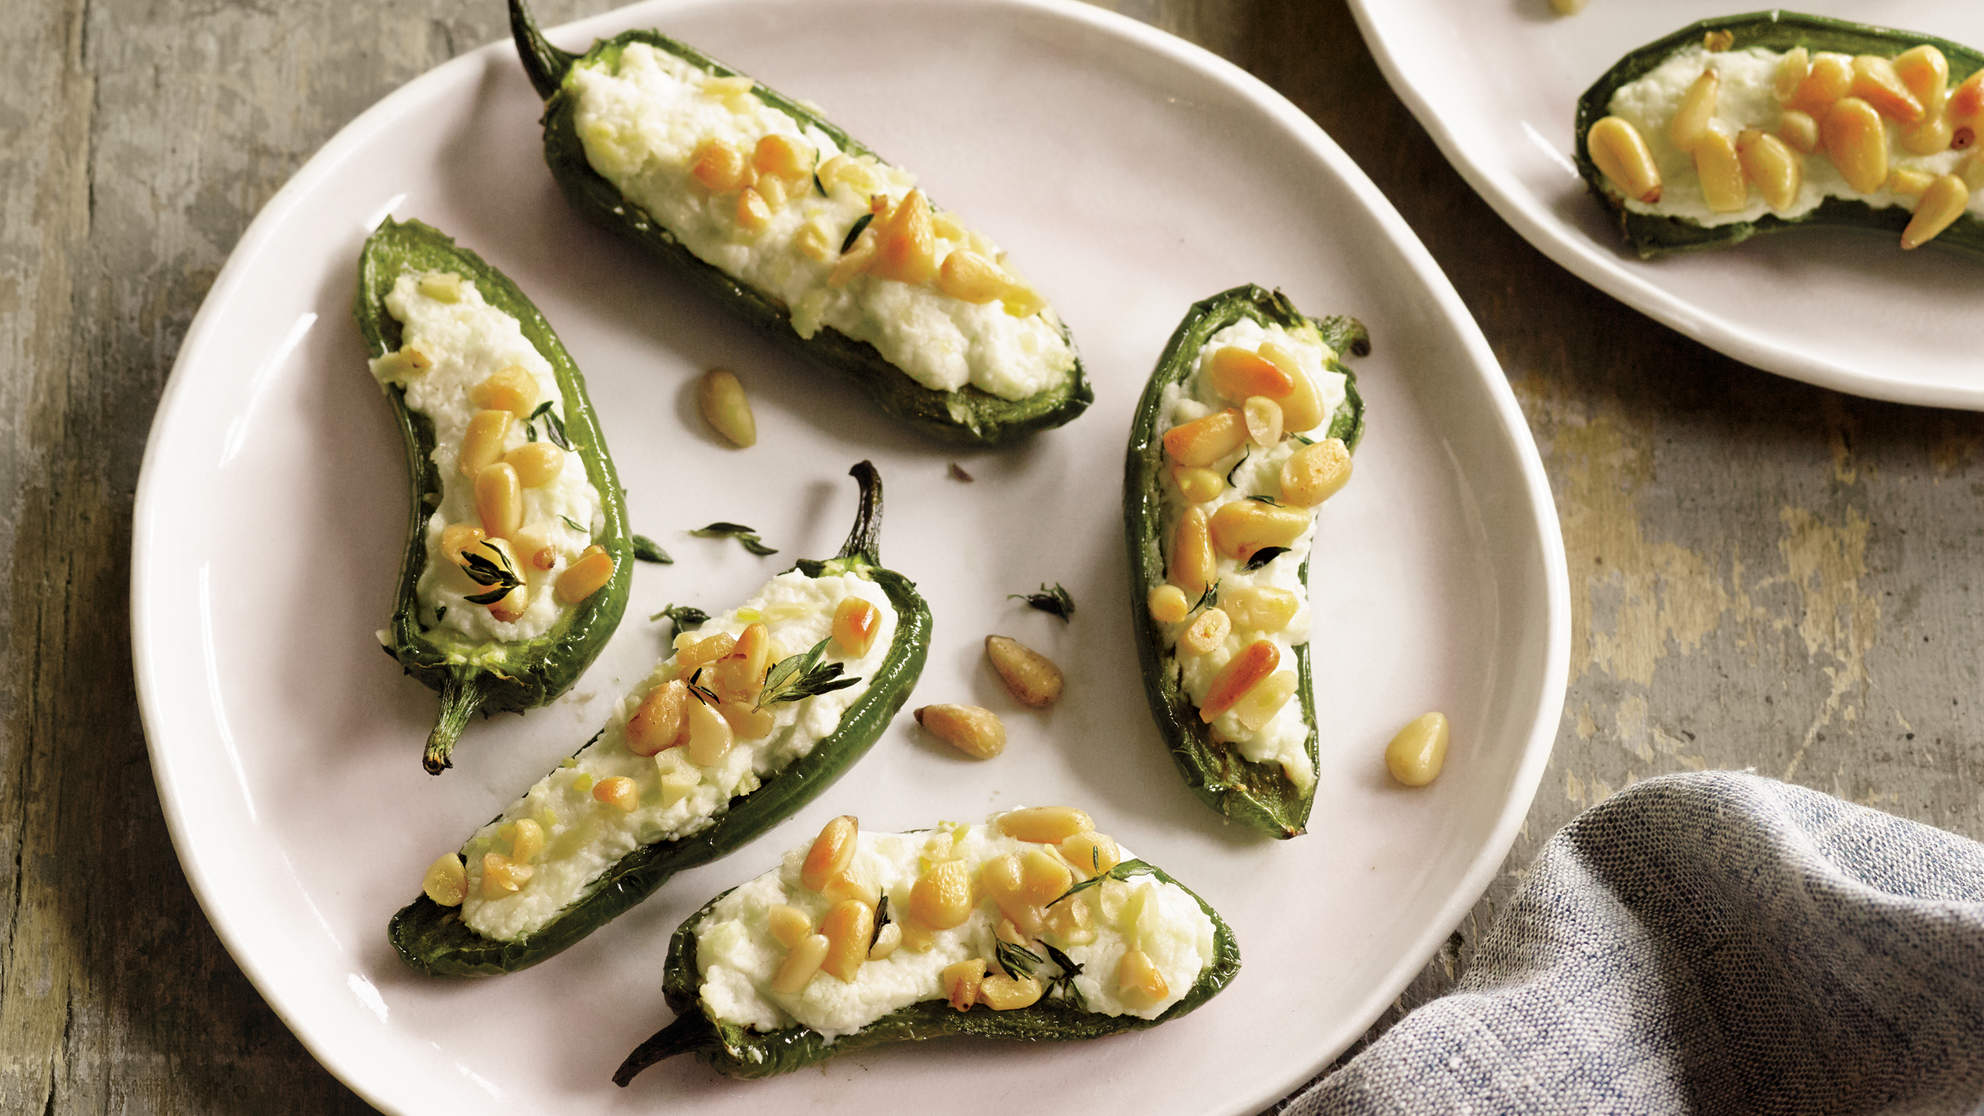 goat-cheese-stuffed-jalapenos-healthier-recipes